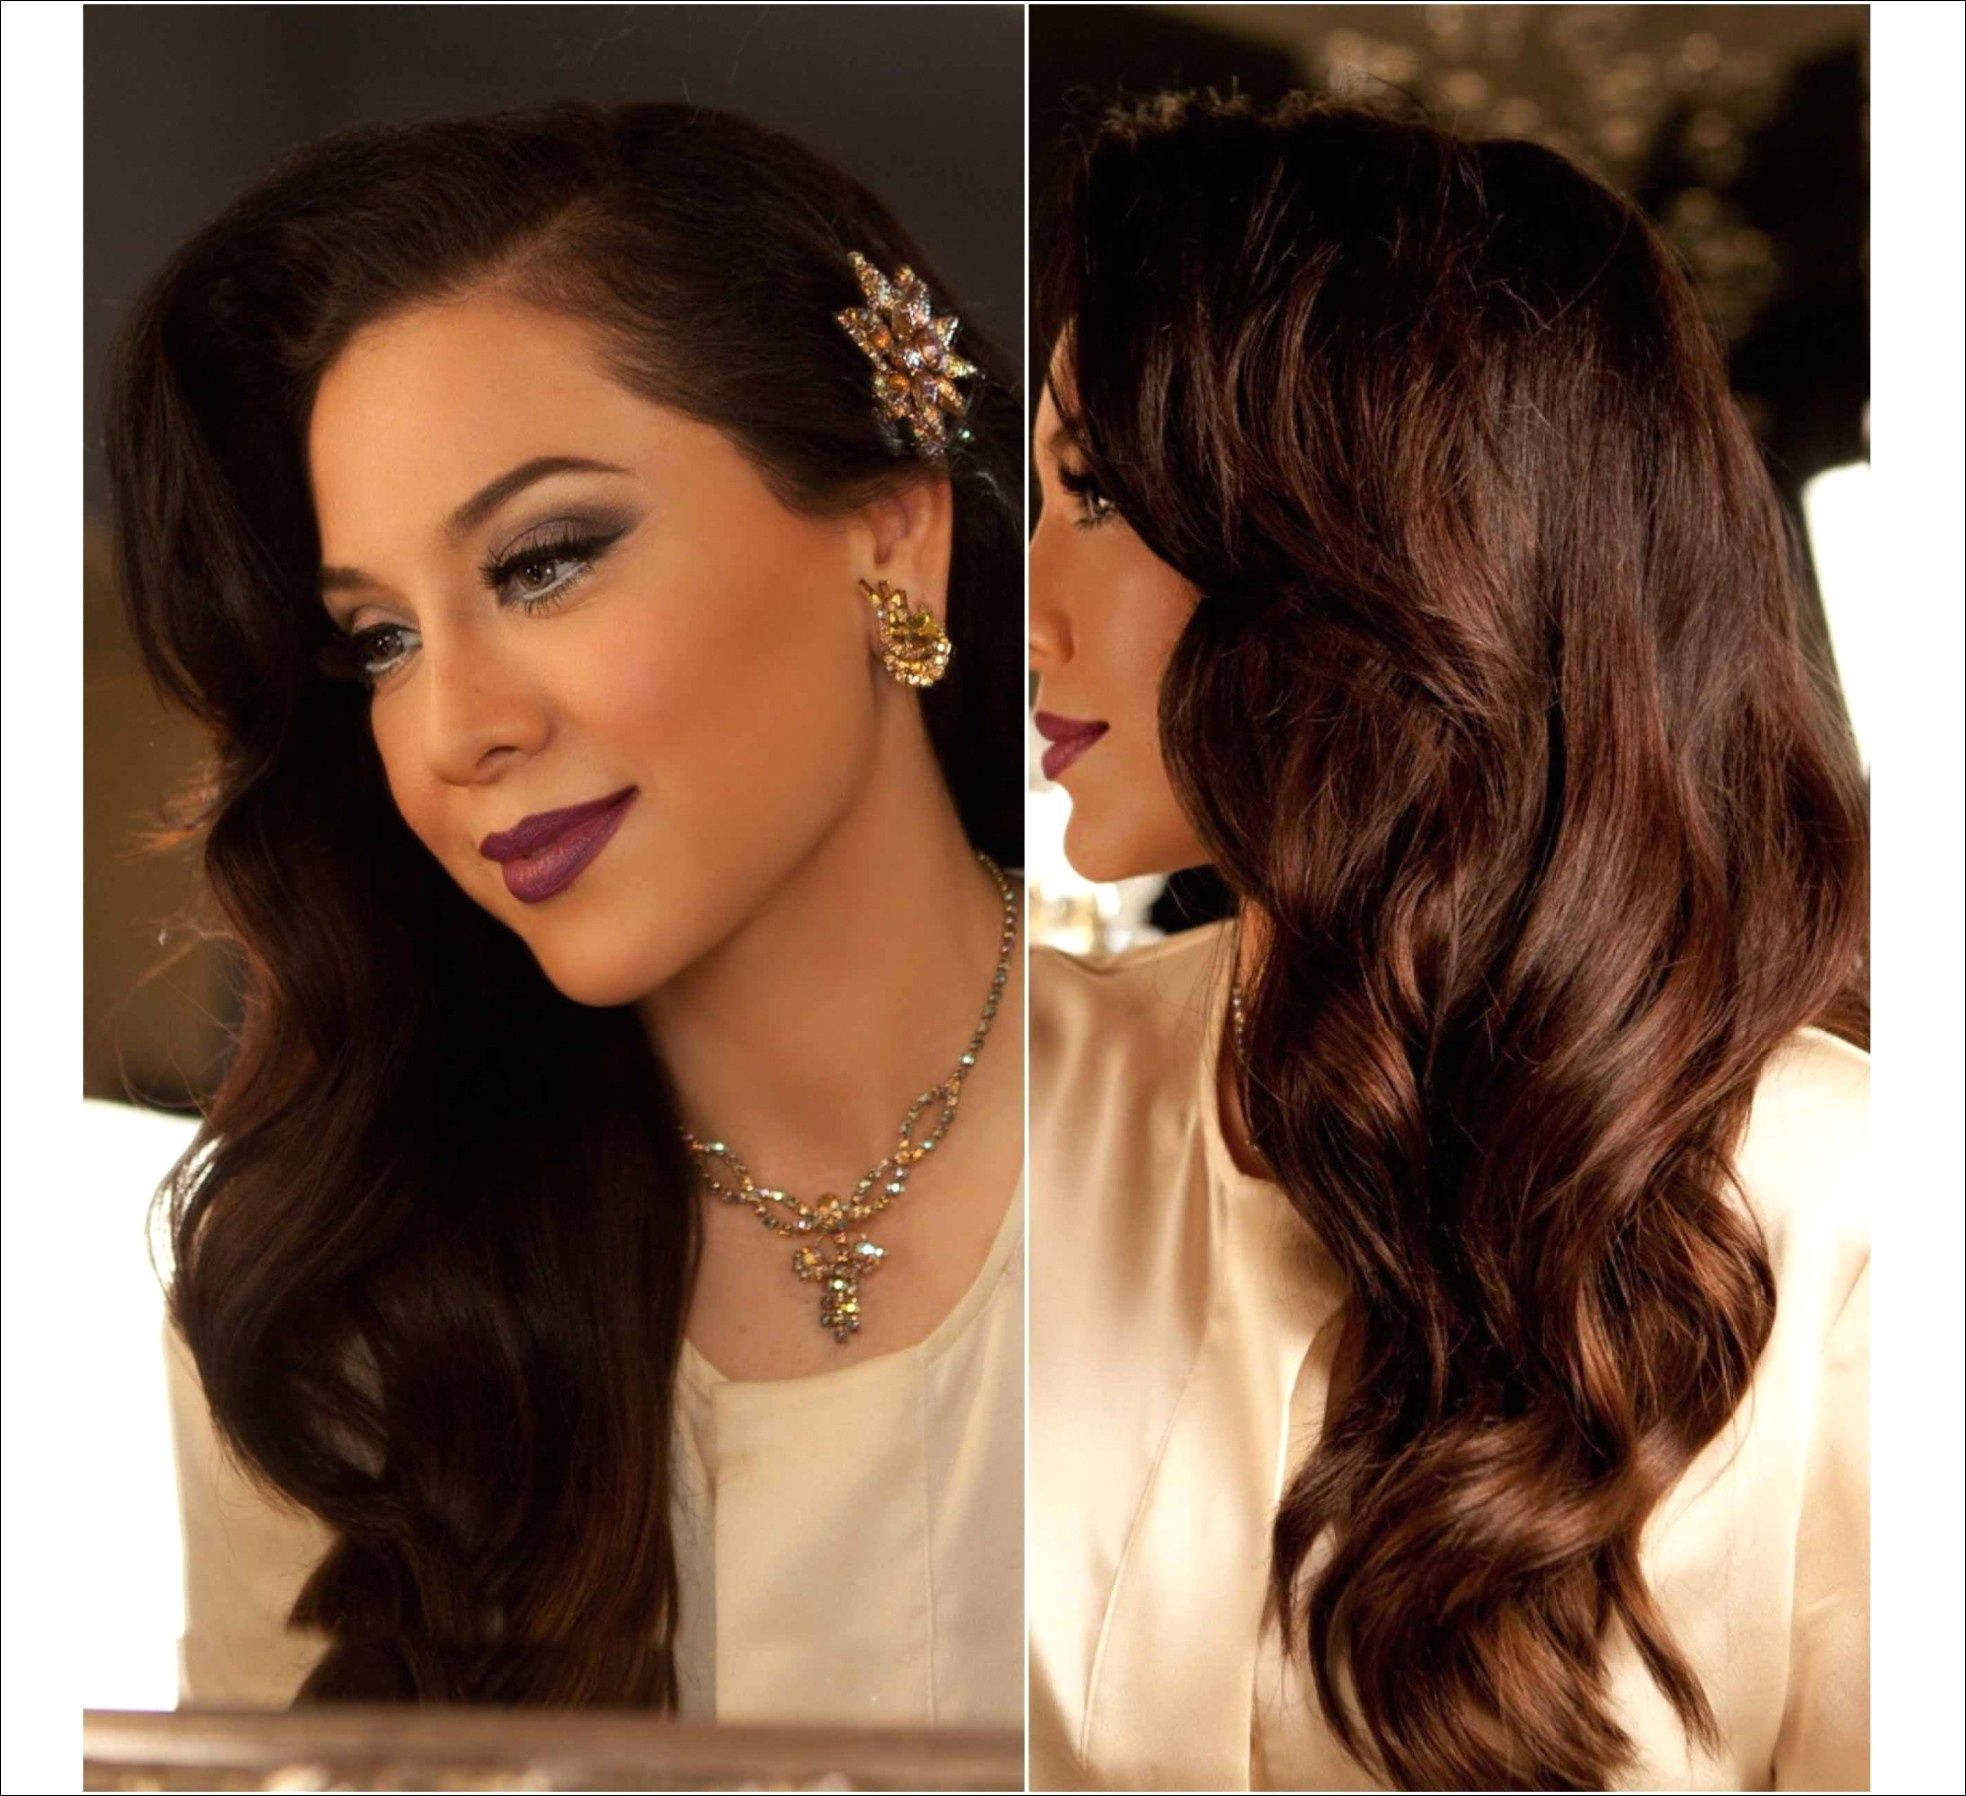 Cool Roaring 20 S Hairstyles For Long Hair Beautiful Roaring 20 S Hairstyles For Long Hair 14 For Hairstyle Boy Wi Hollywood Hair Glamour Hair Long Hair Styles